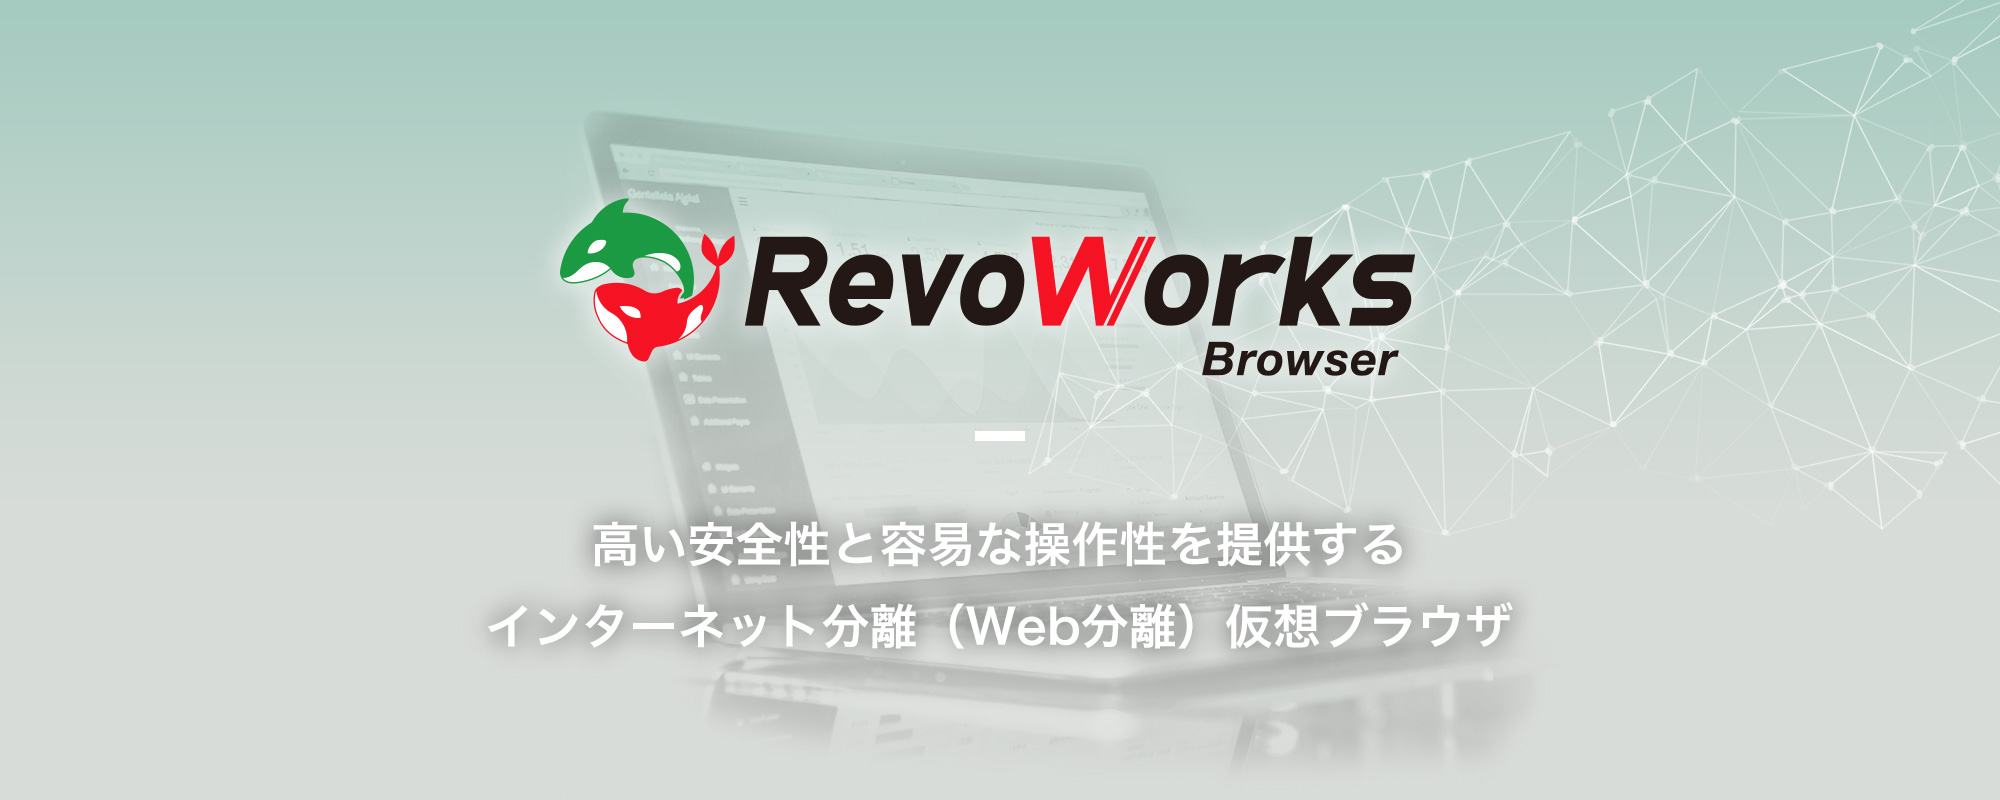 revoworks-browser